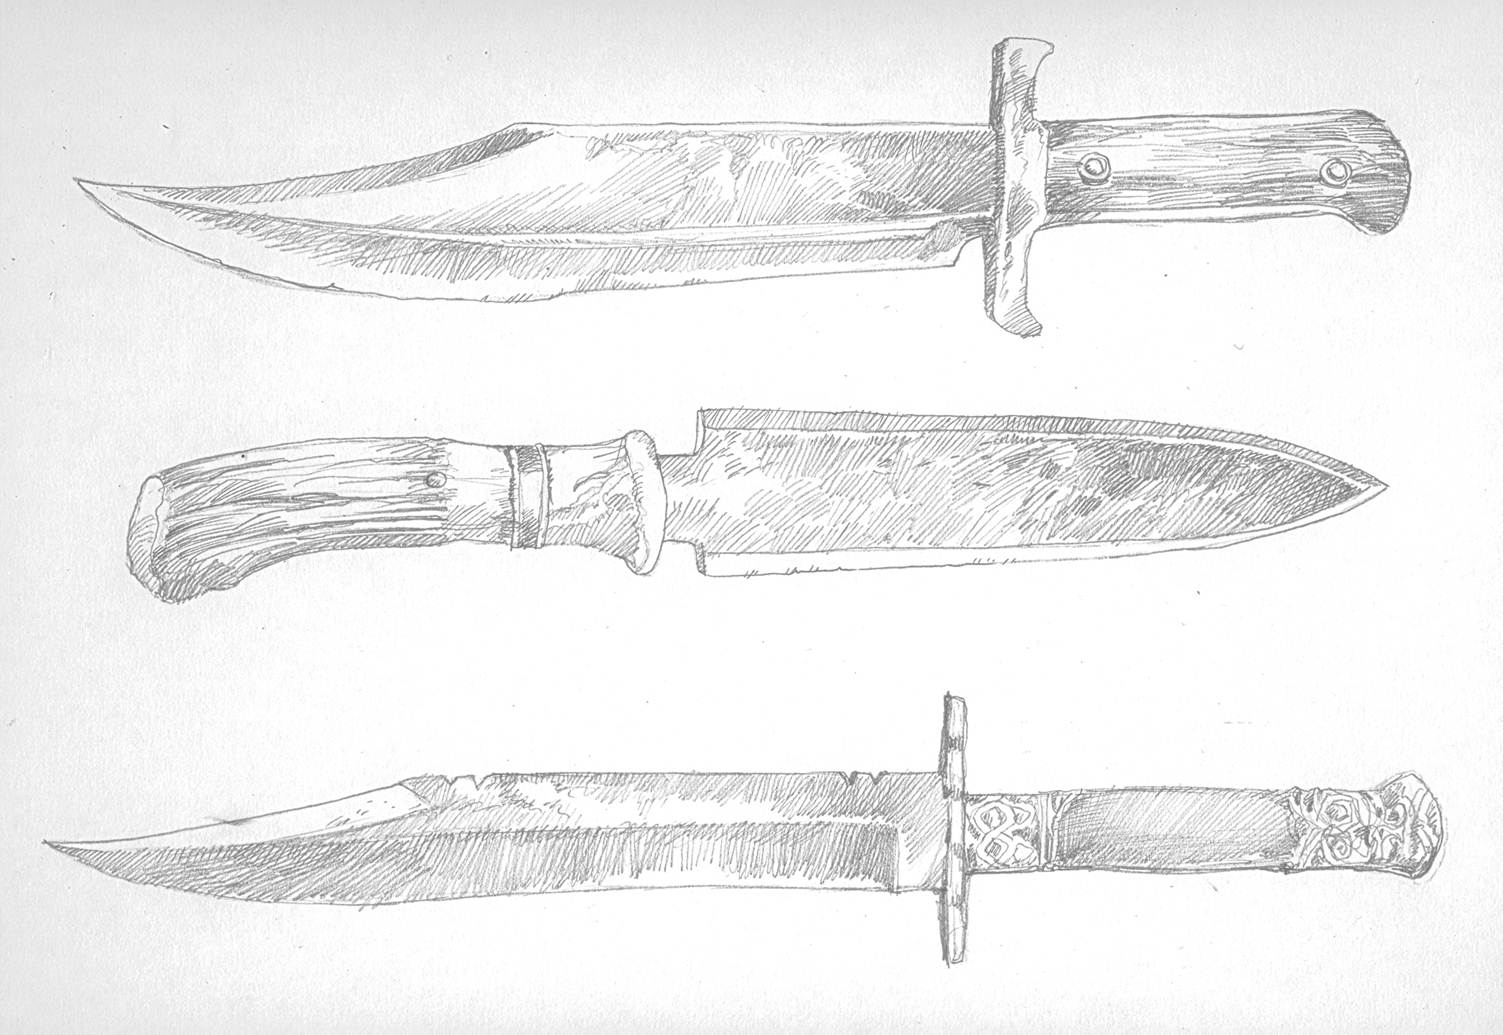 Red Country Artwork Knives | Joe Abercrombie